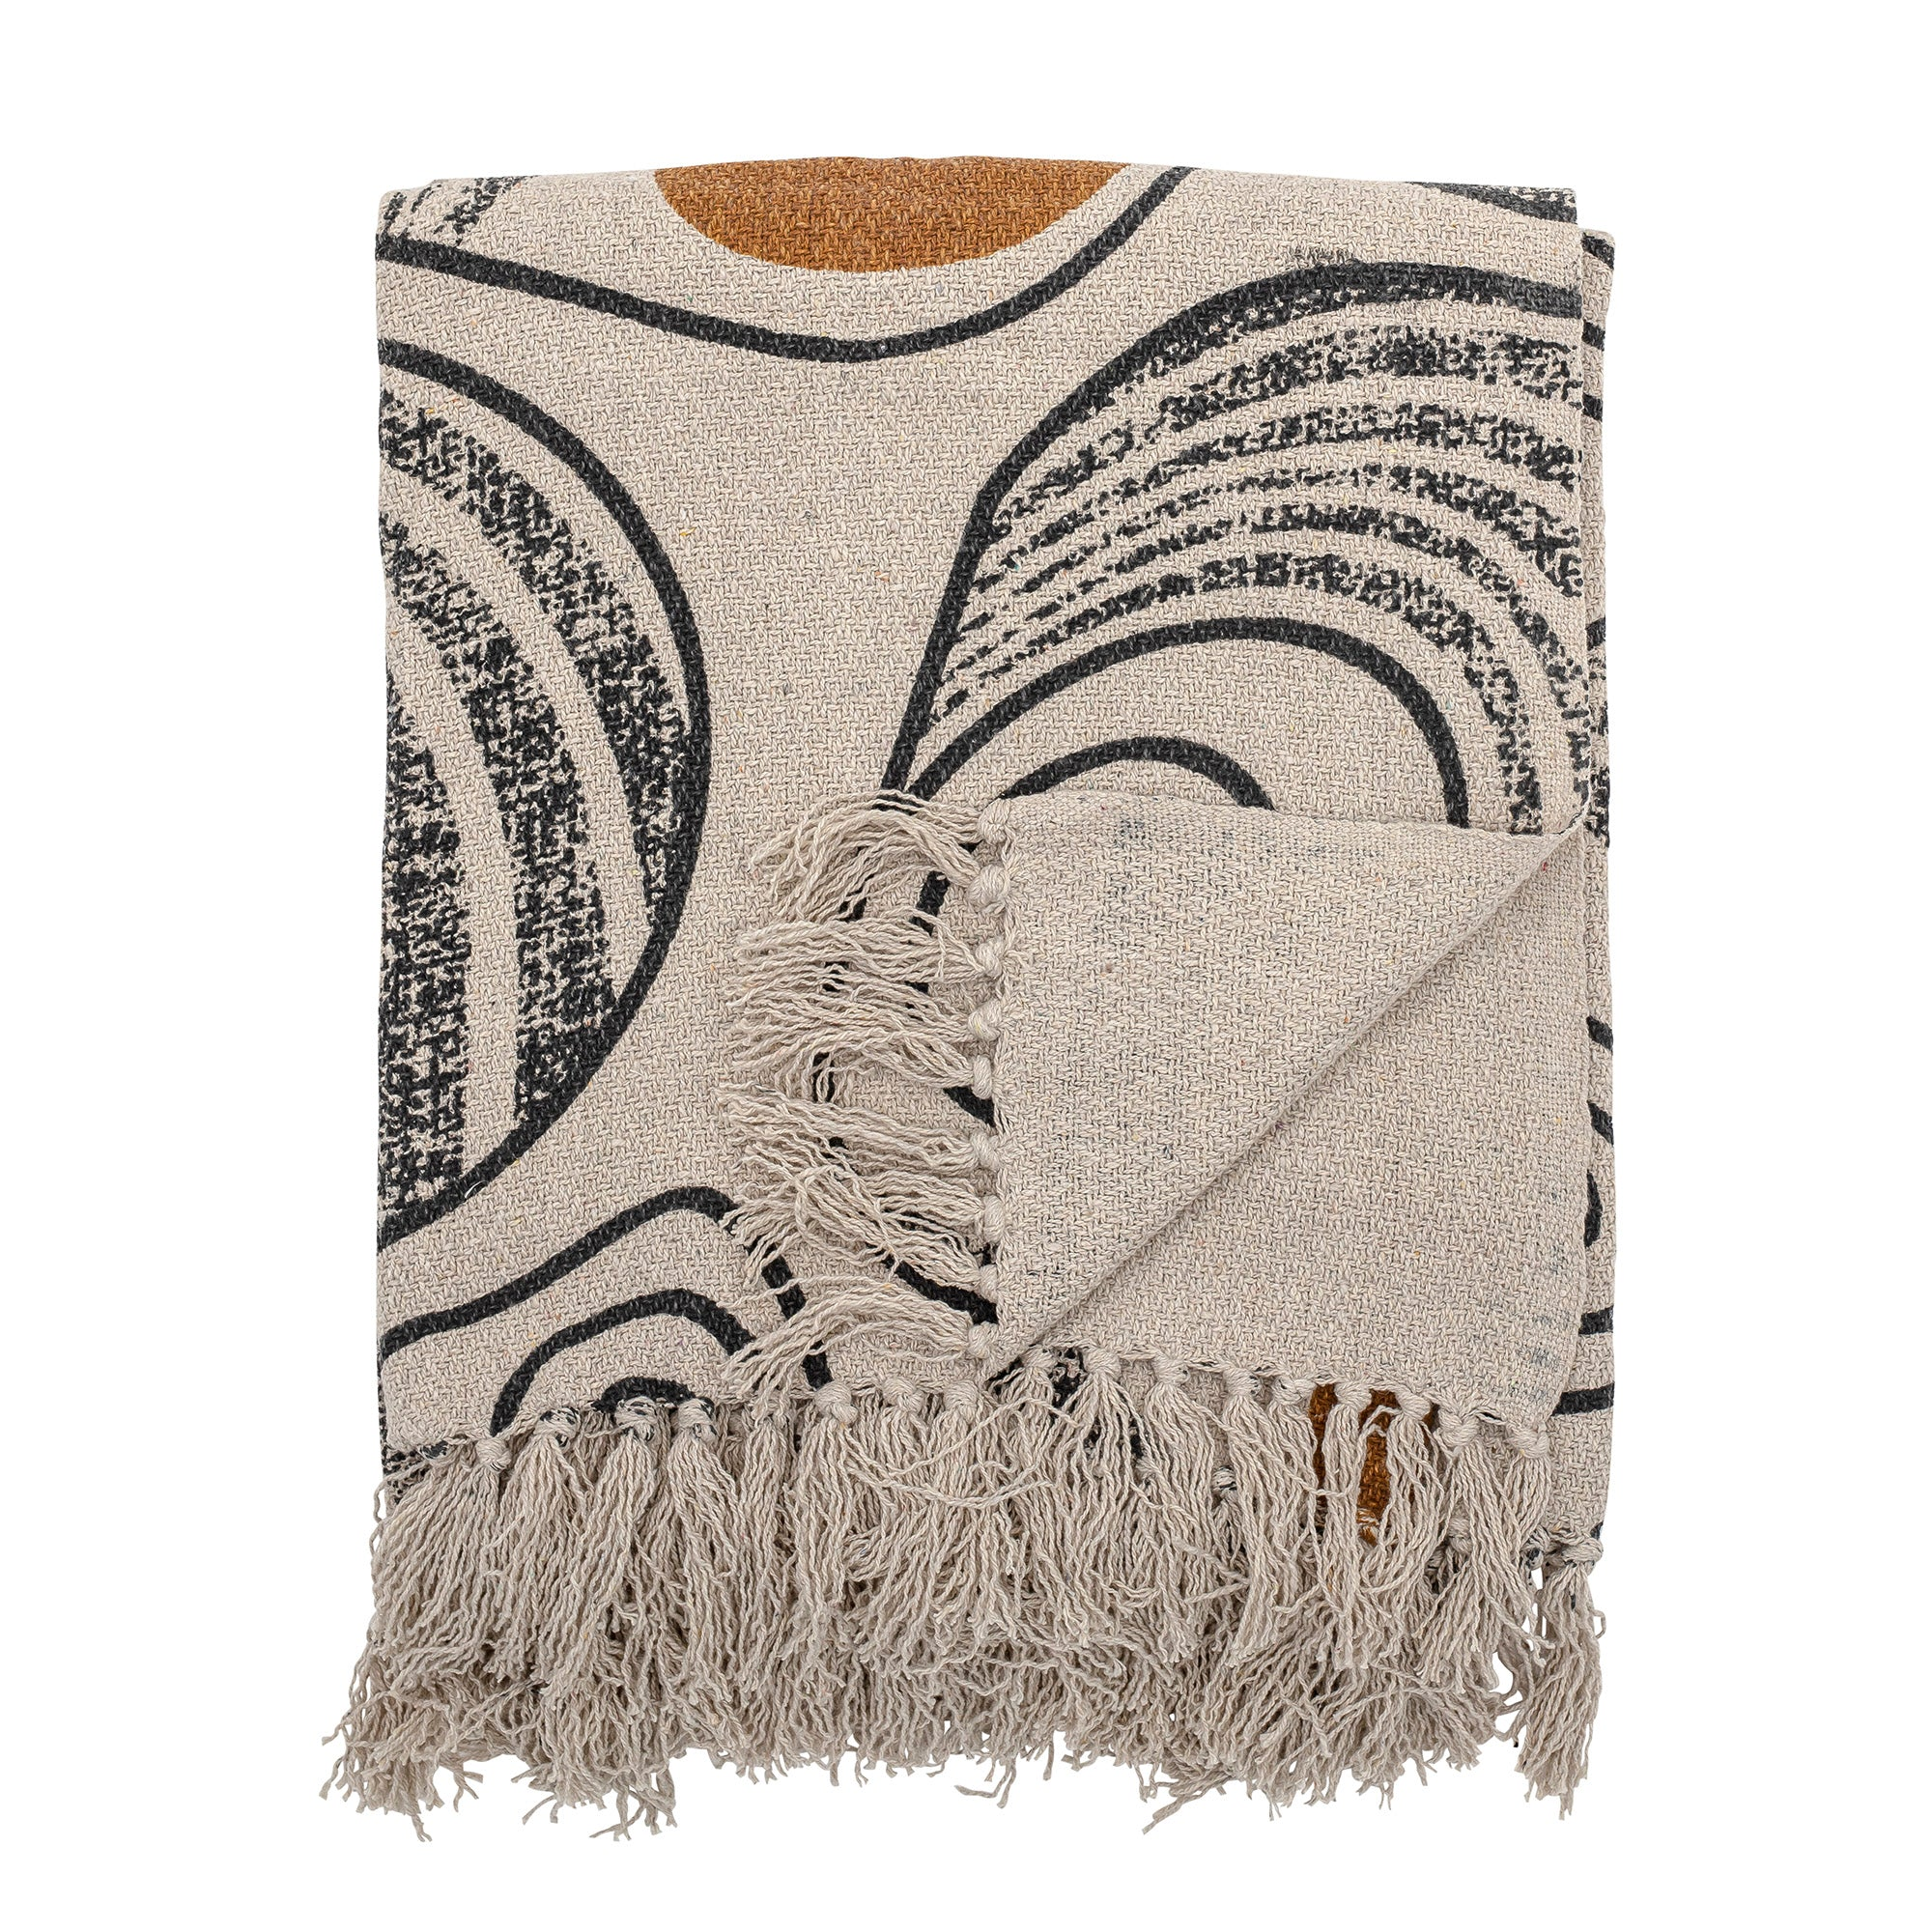 Kinshasha Geometric throw